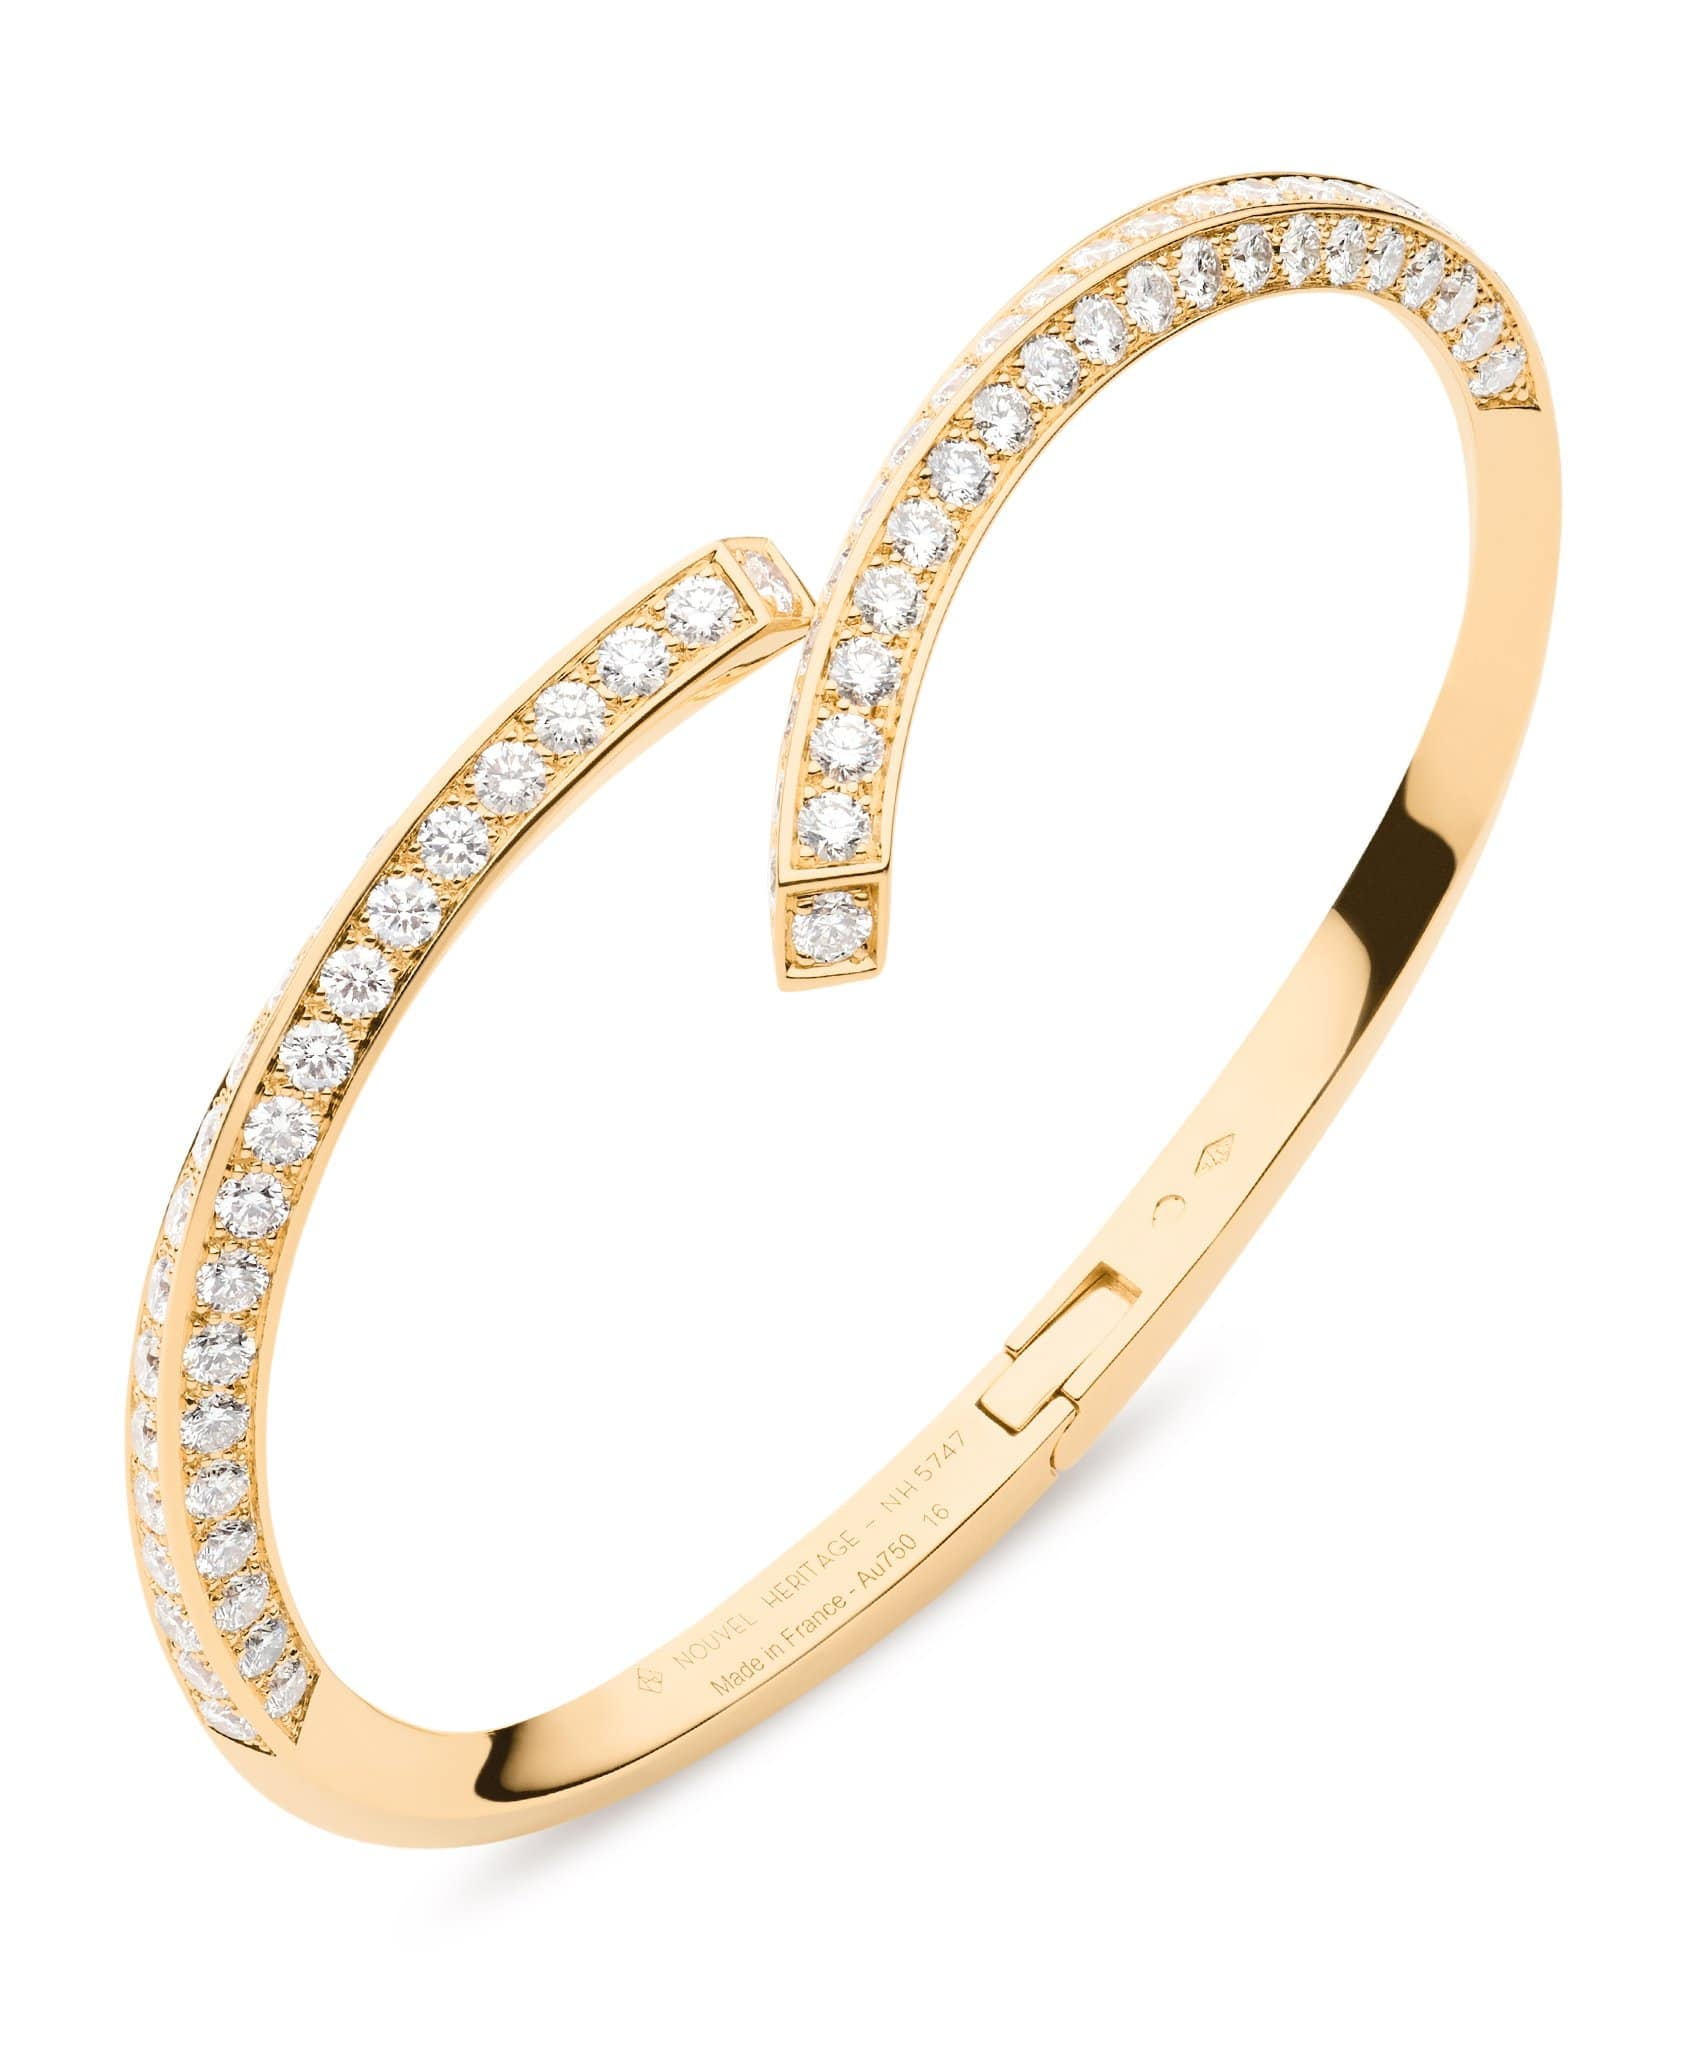 Diamond Thread Bangle: Discover Luxury Fine Jewelry | Nouvel Heritage || Yellow Gold